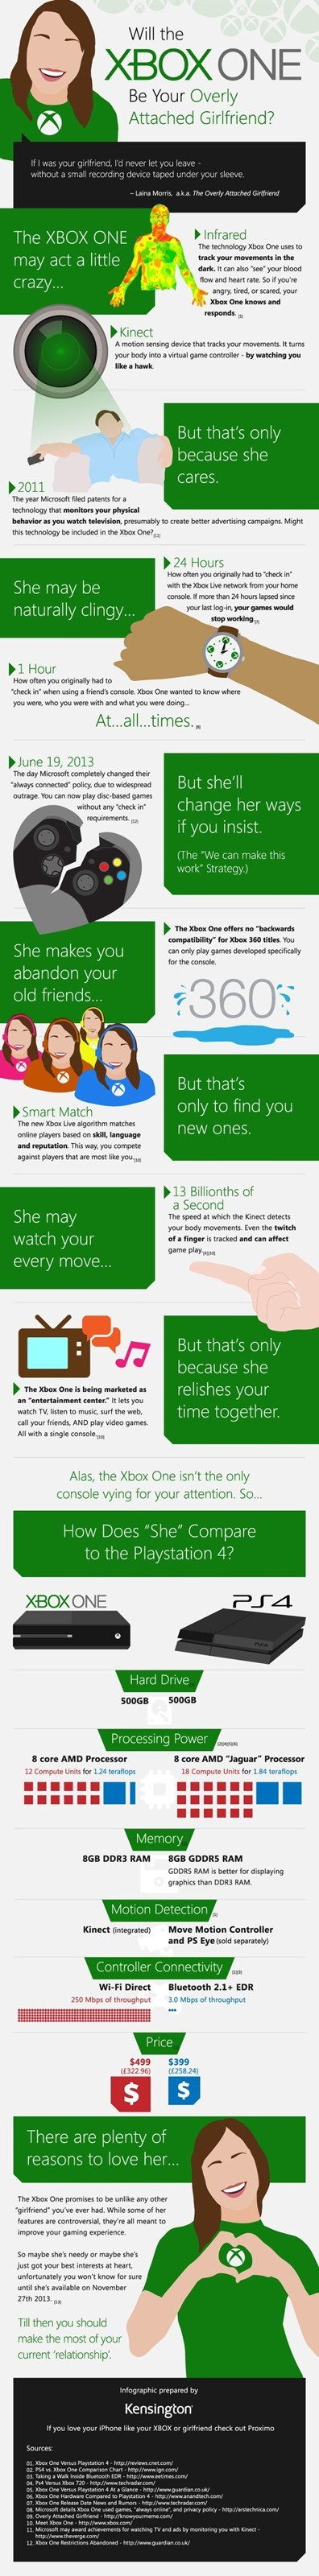 Will the Xbox One Be Your Overly Attached Girlfriend? [Infographic]